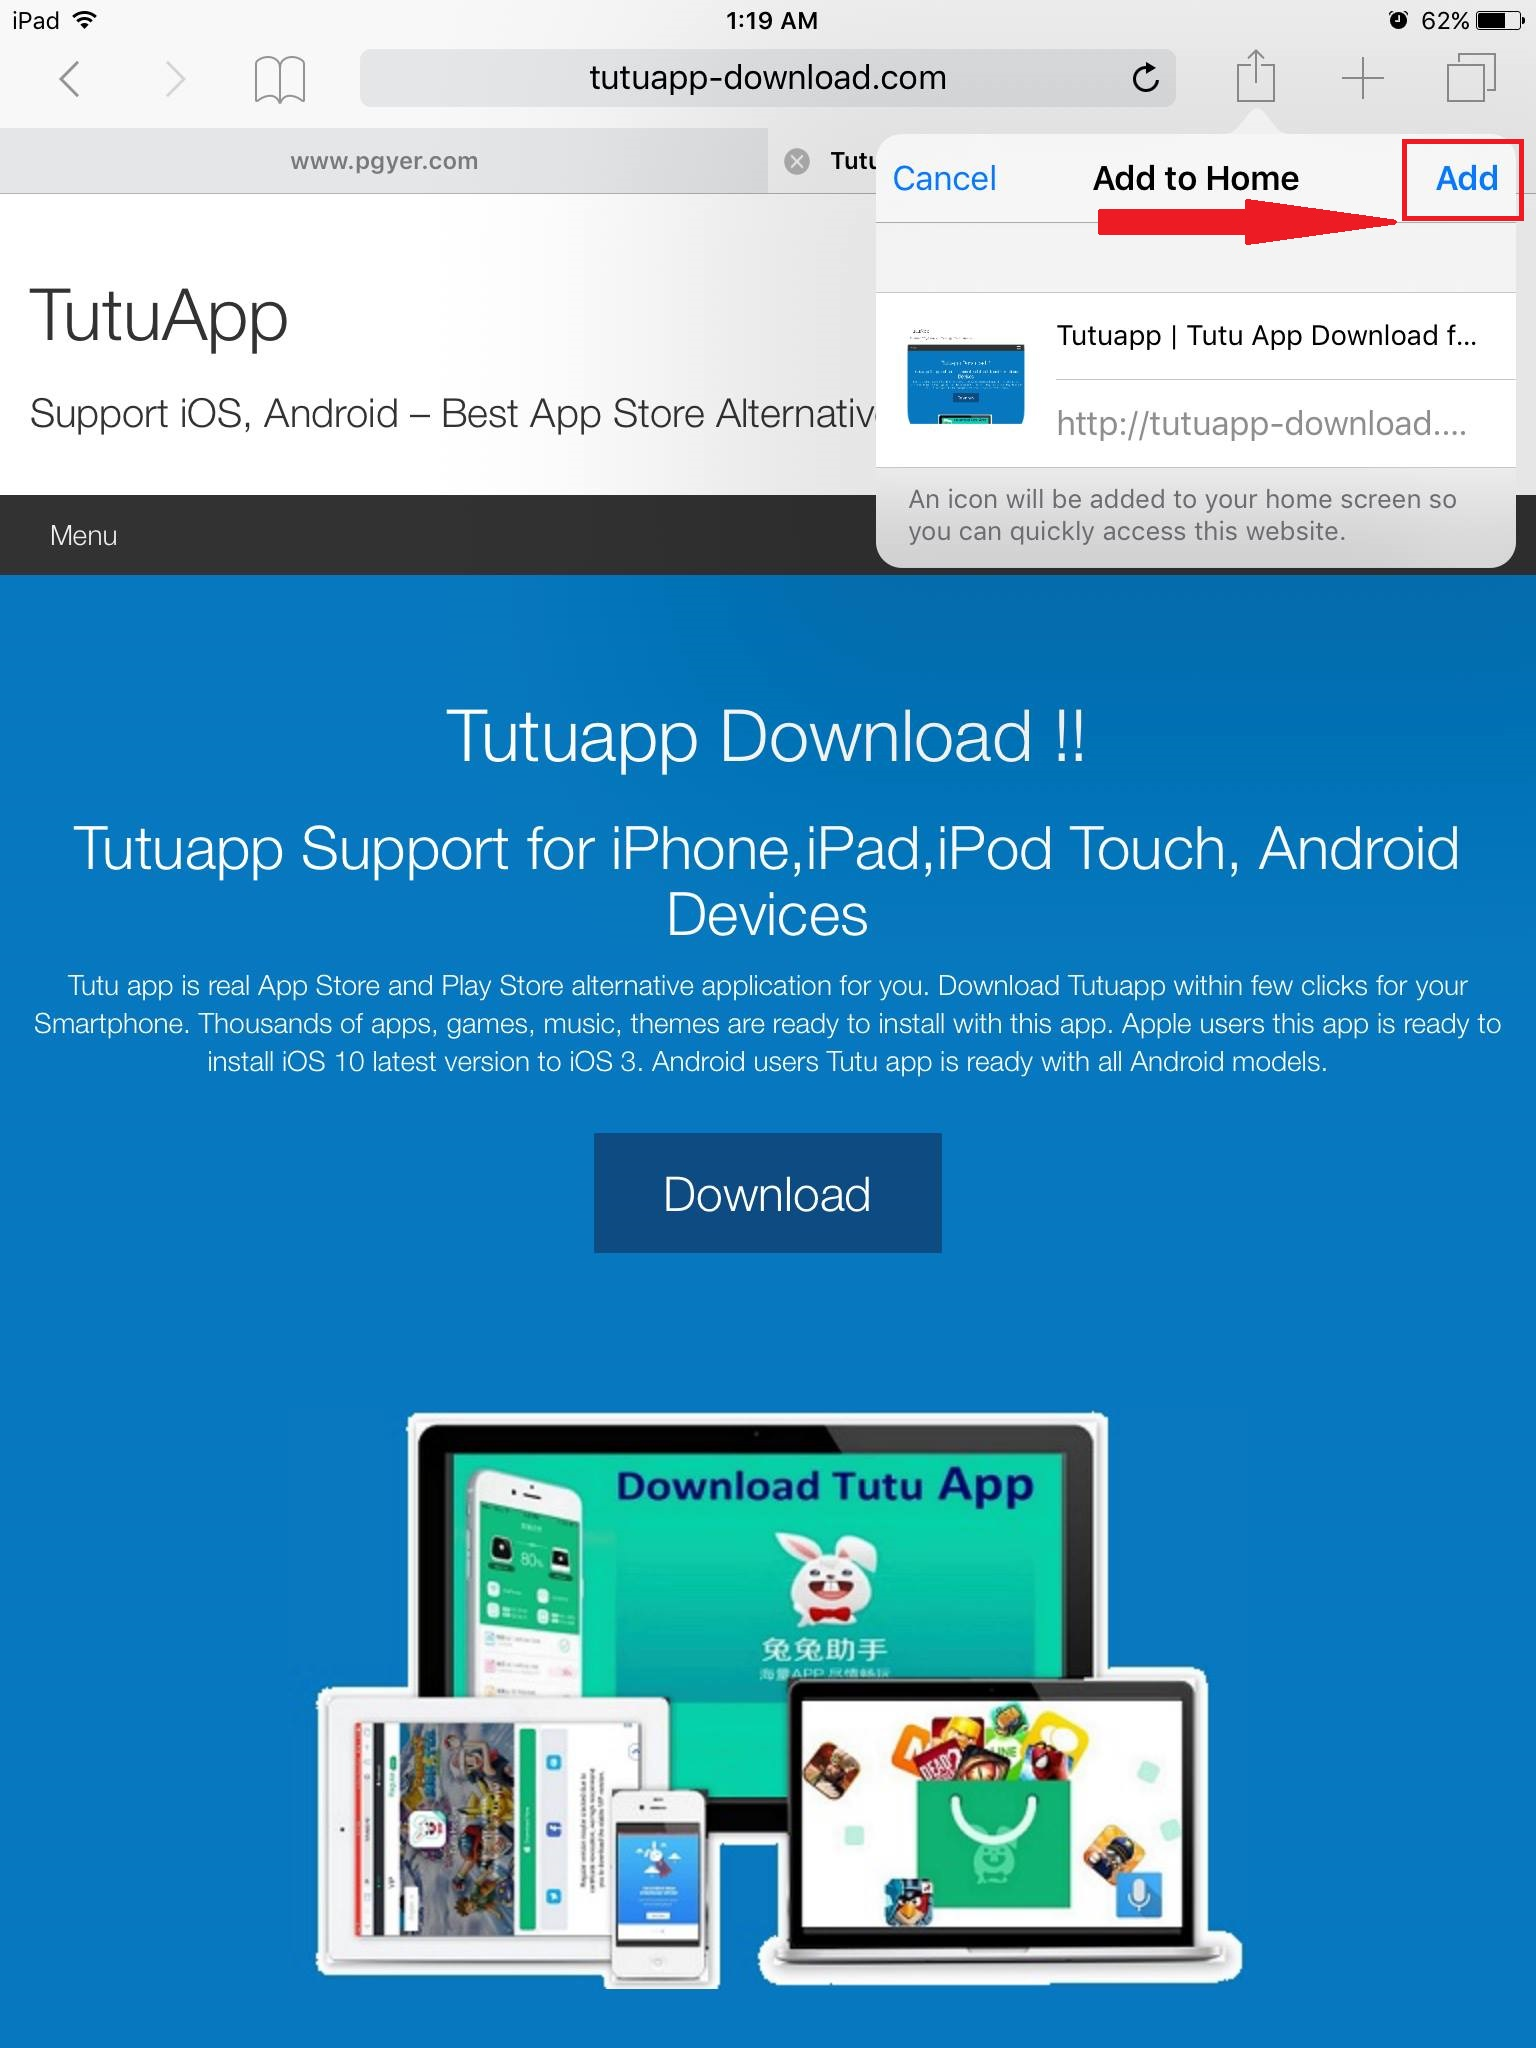 tutuapp update